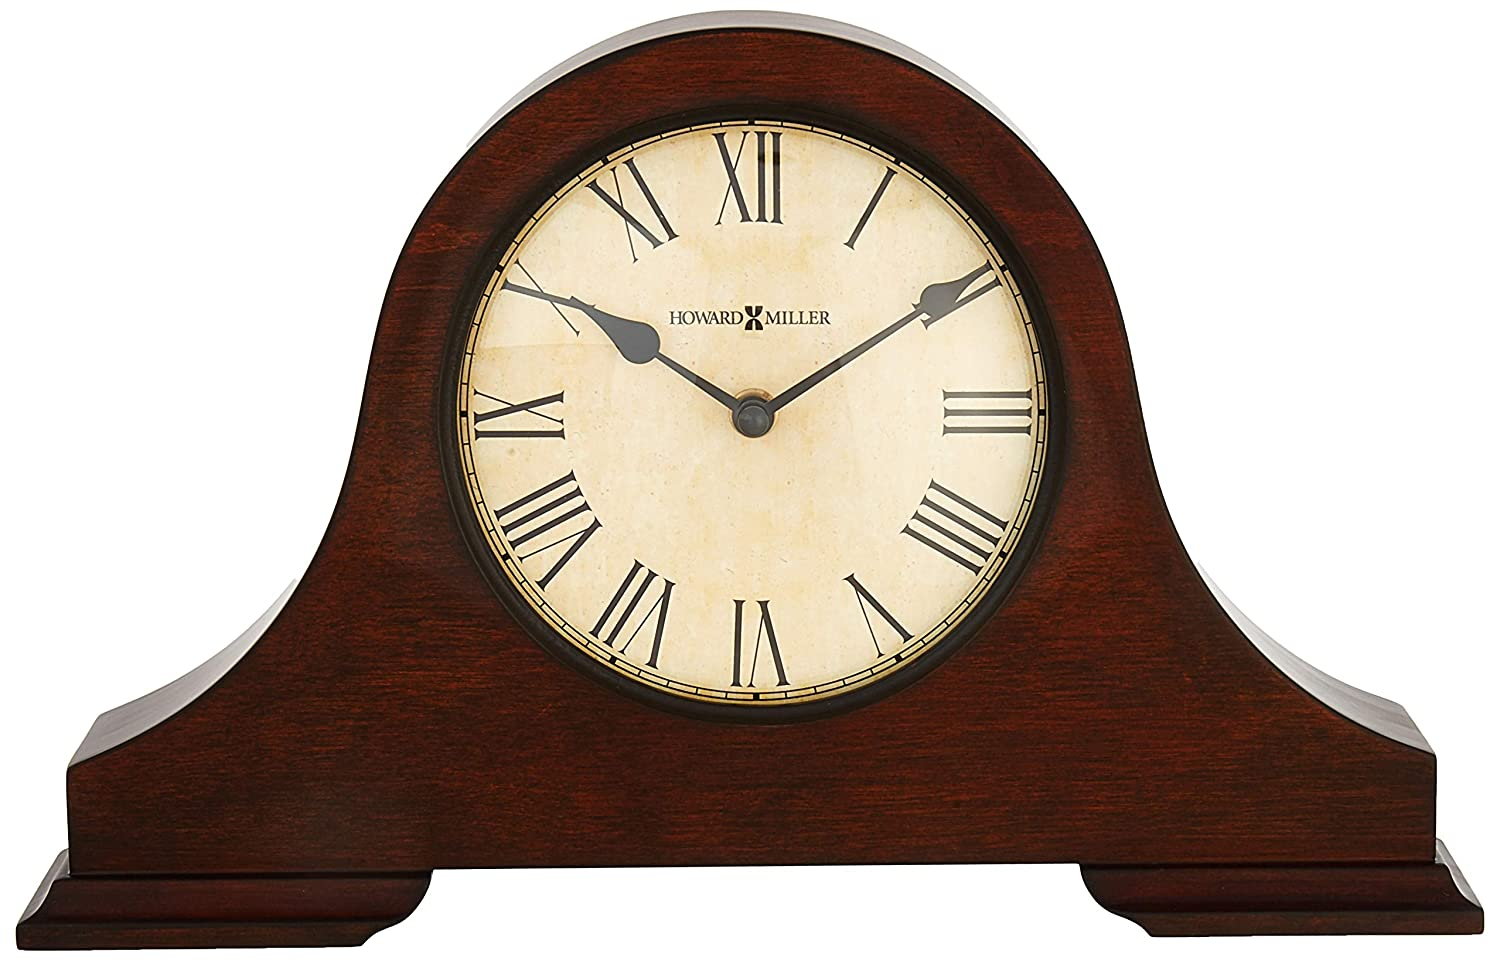 Howard Miller 635-143 Humphrey Mantel Clock by